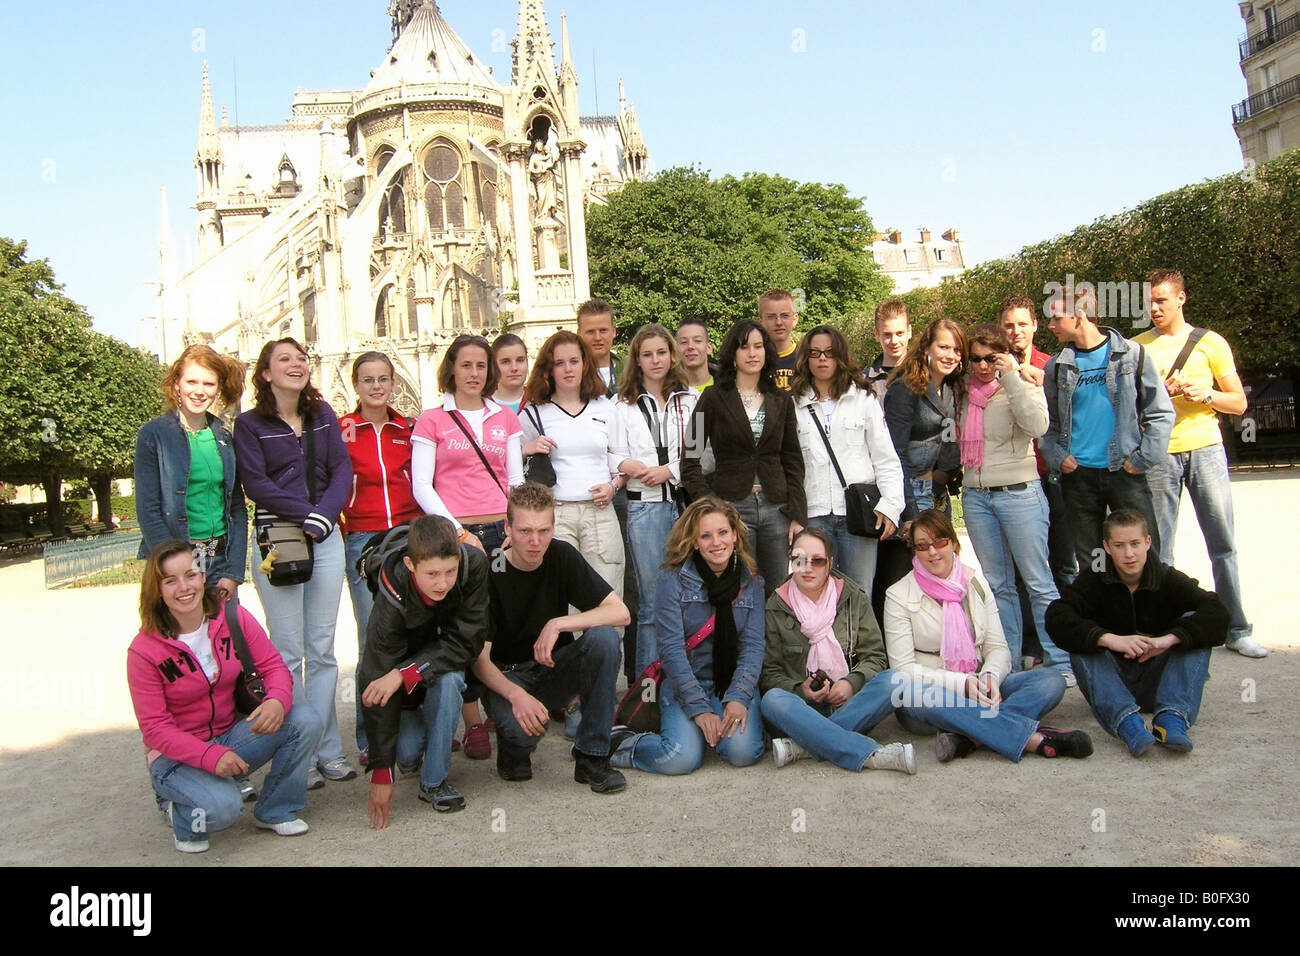 School group of Caucasian teenagers posing for camera in front of Notre Dame Paris France - Stock Image